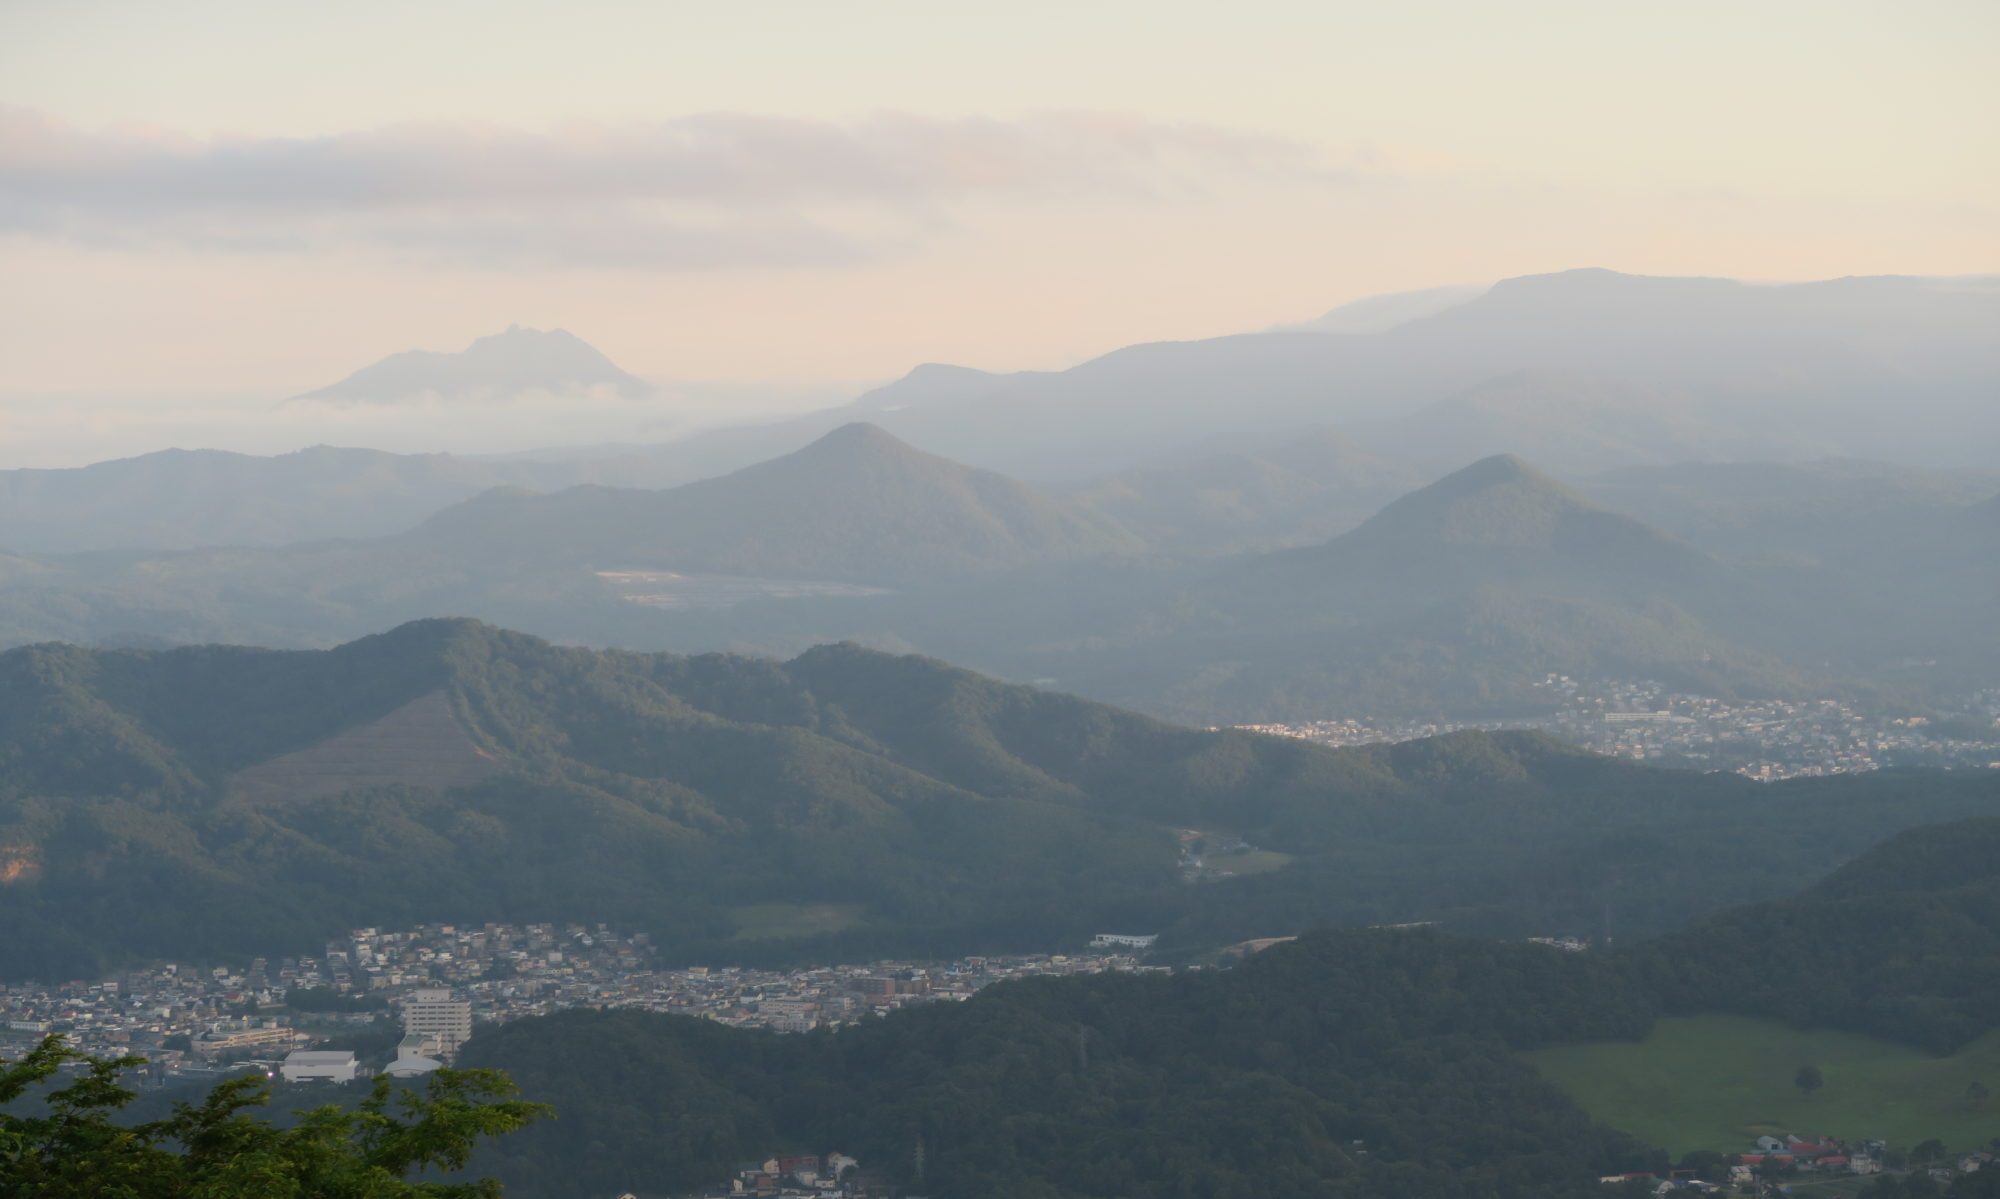 Eric Janson's blog on Life, the Universe, and Bicycling Around Japan